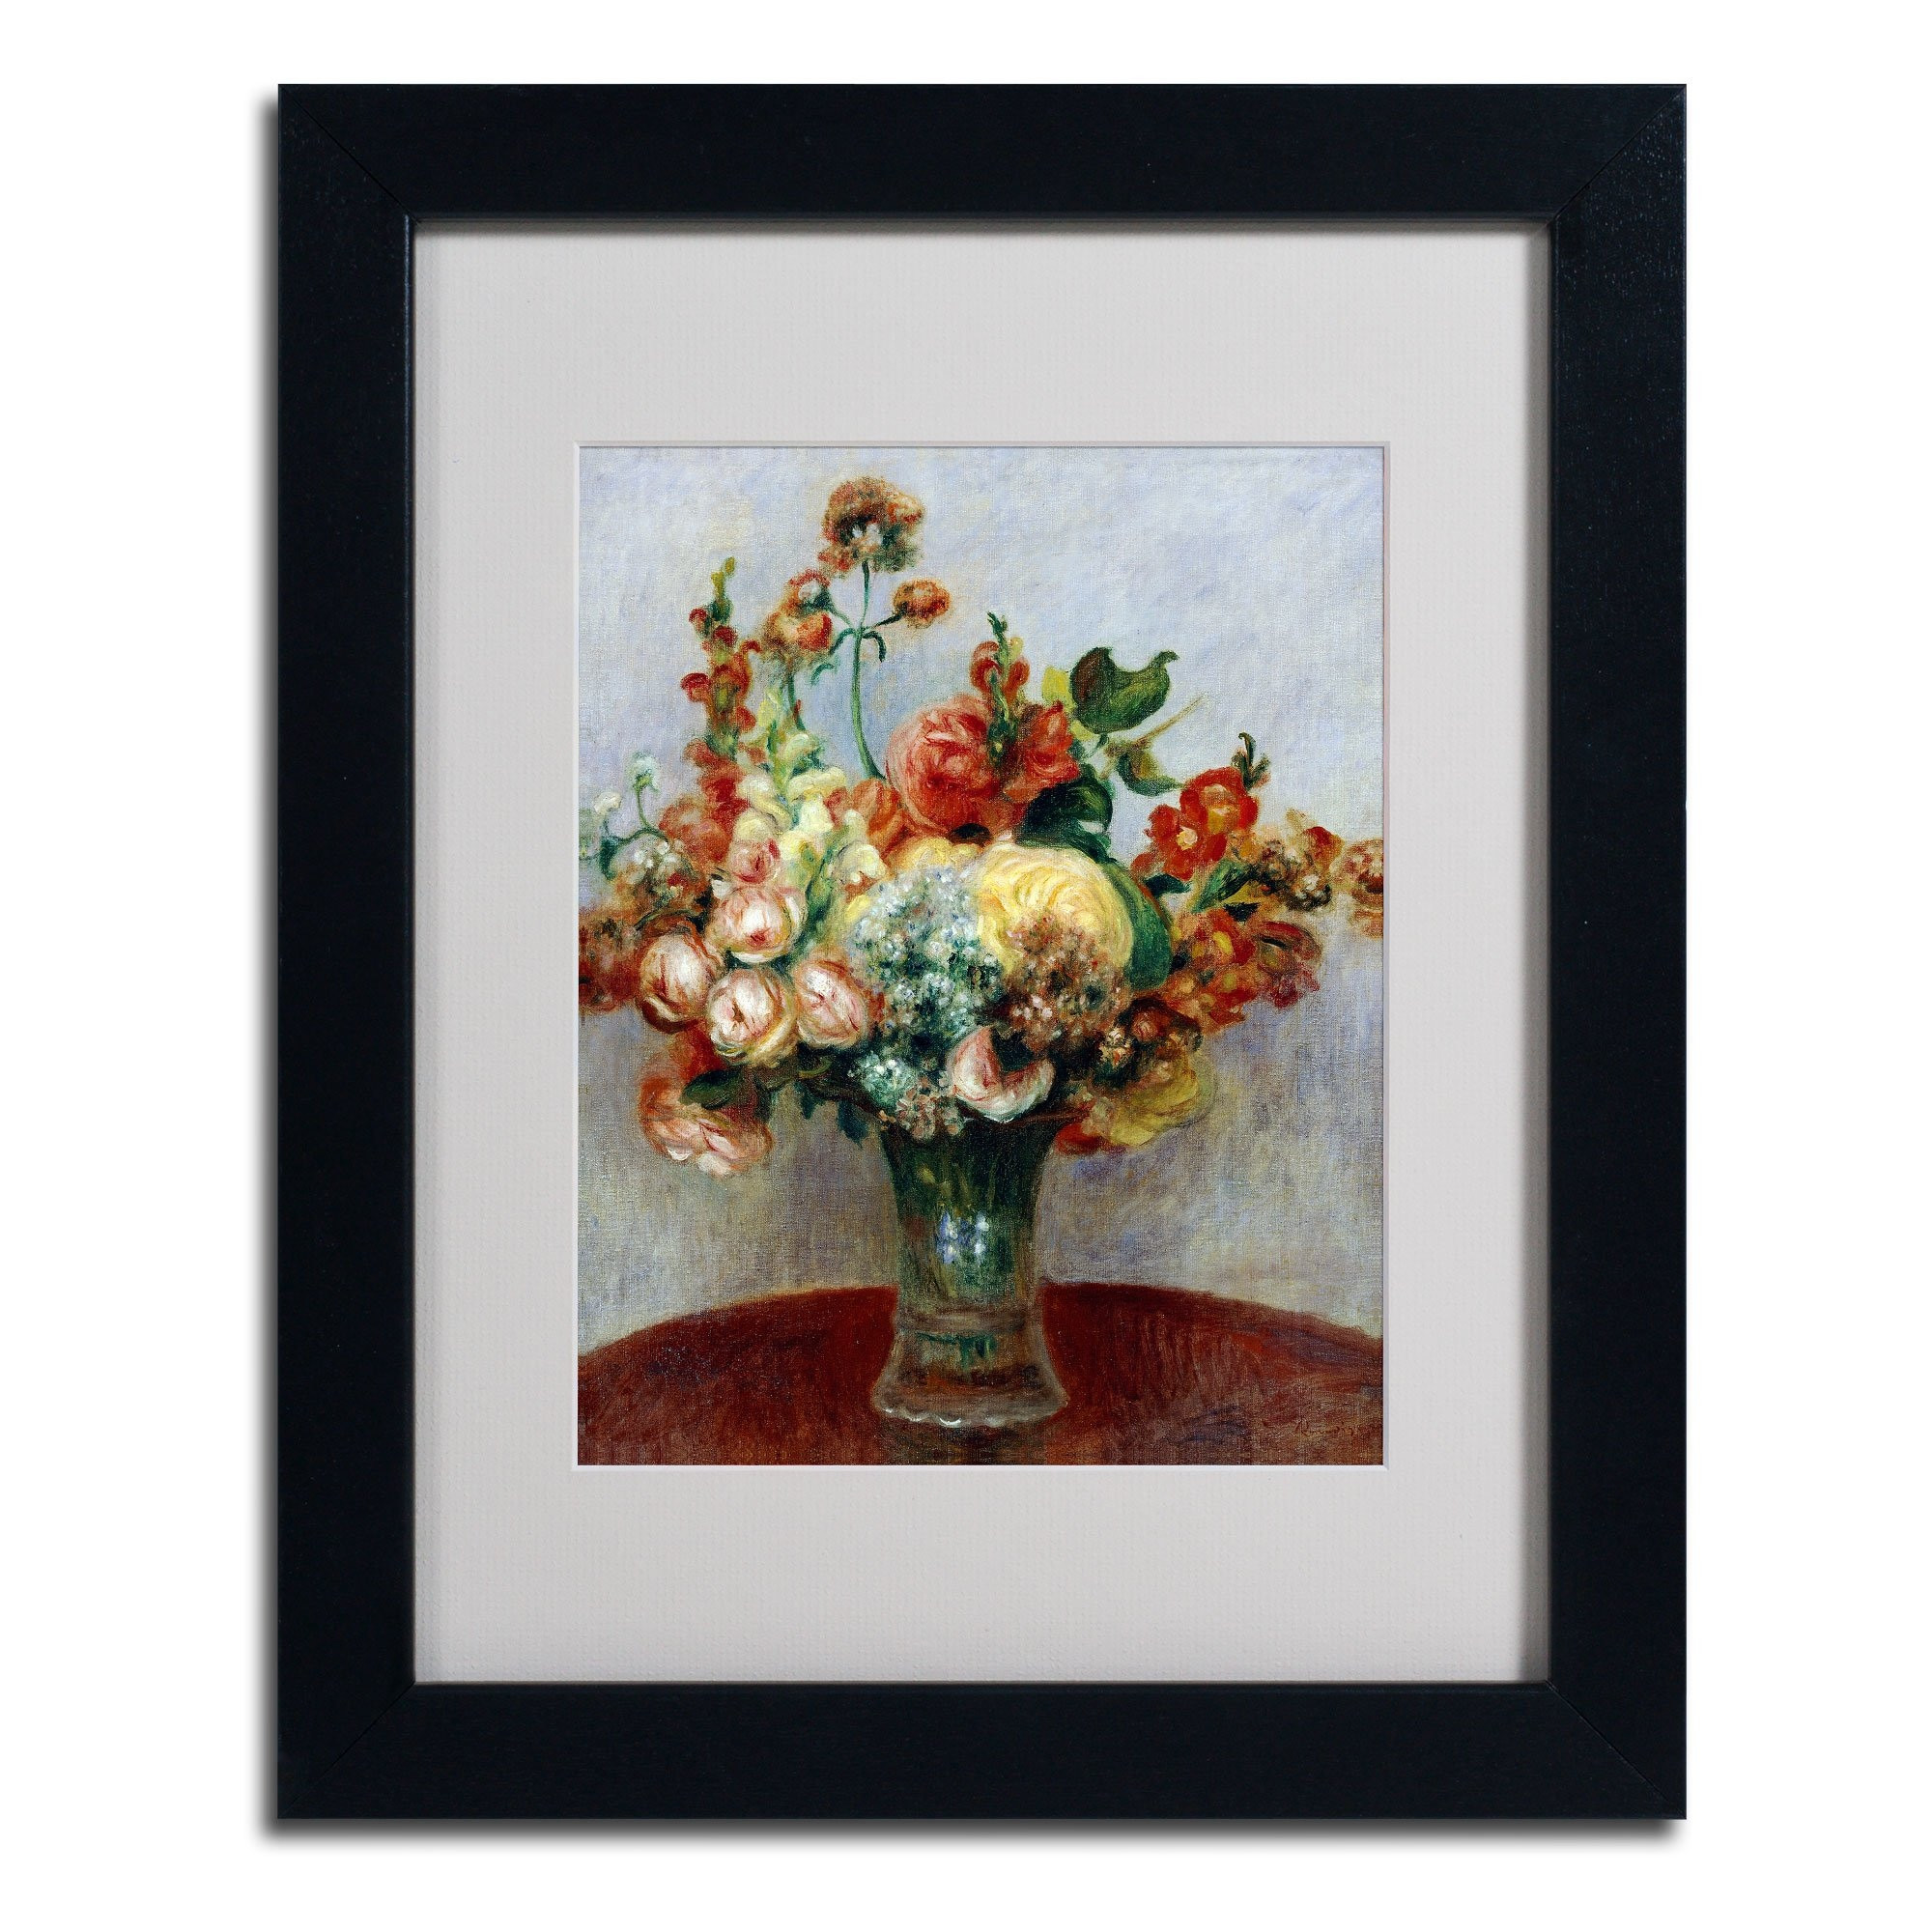 handmade wall hanging vase of flower vase picture frame inspirational new lovely handmade sector inside flower vase picture frame unique trademark art flowers in a vase 1898 by pierre